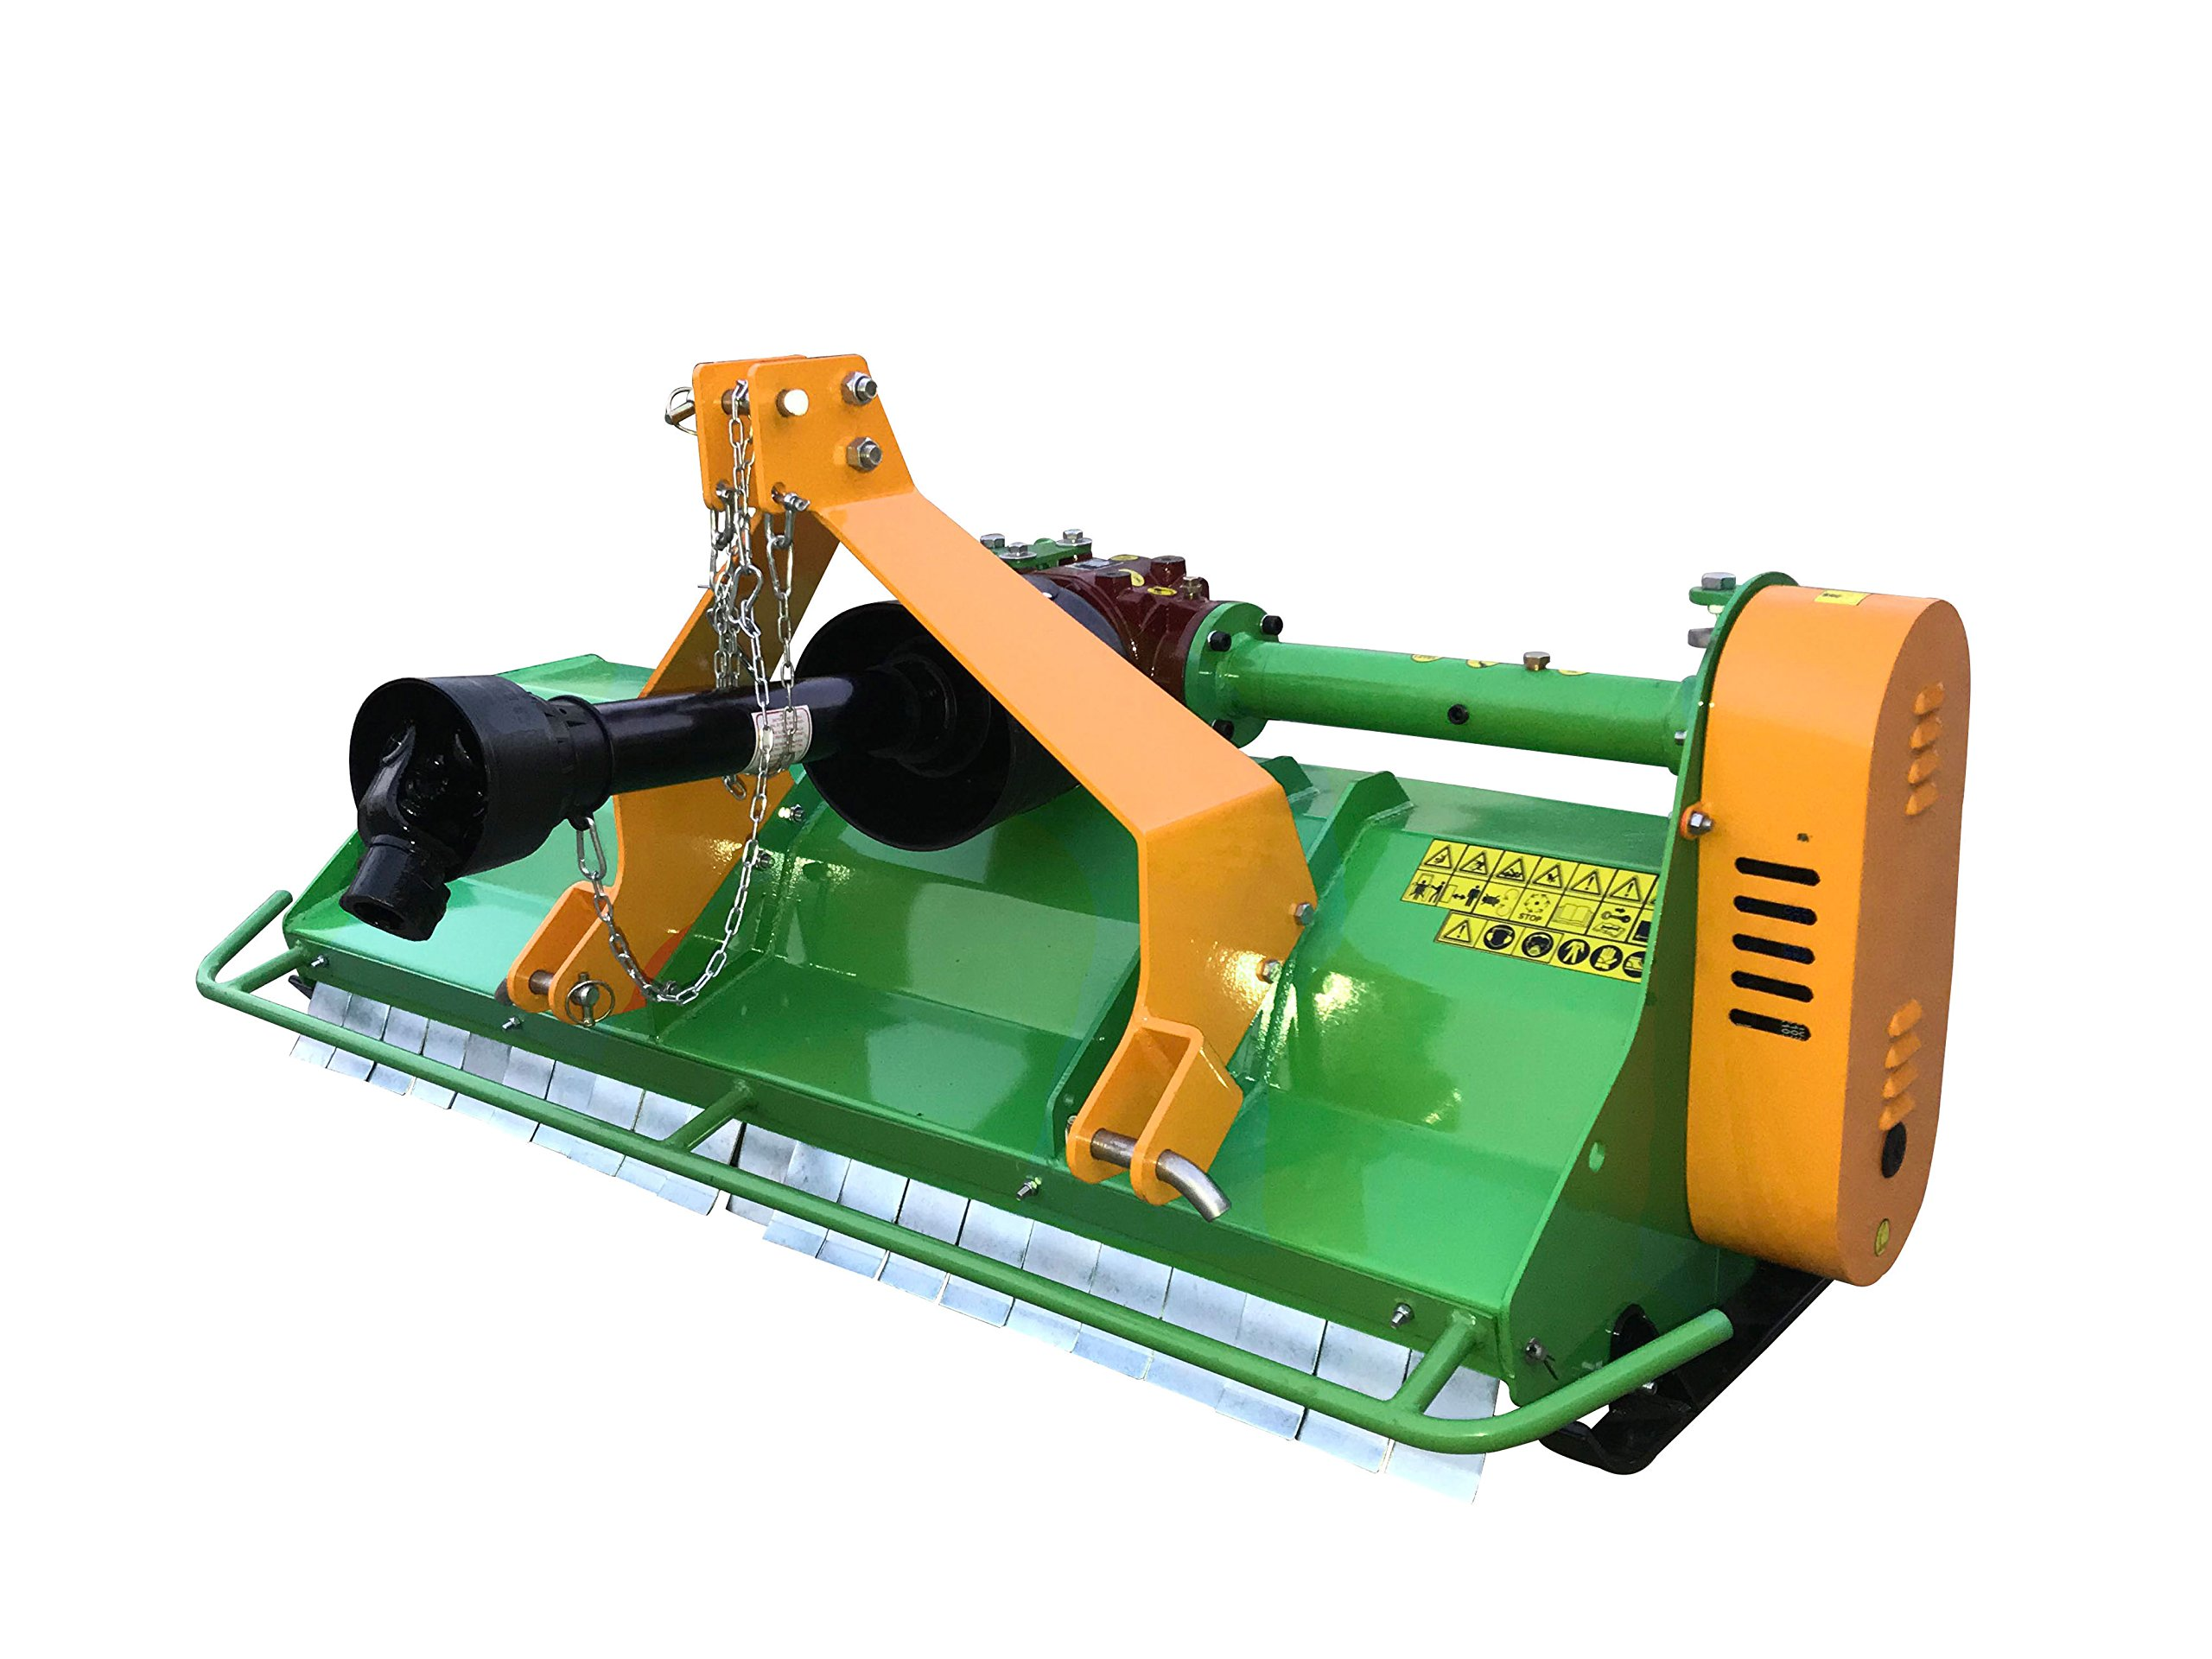 Nova Tractor 76'' Heavy Duty 3 pt Flail Mower, for Tractor 45 to 60 HP, Cat I & II